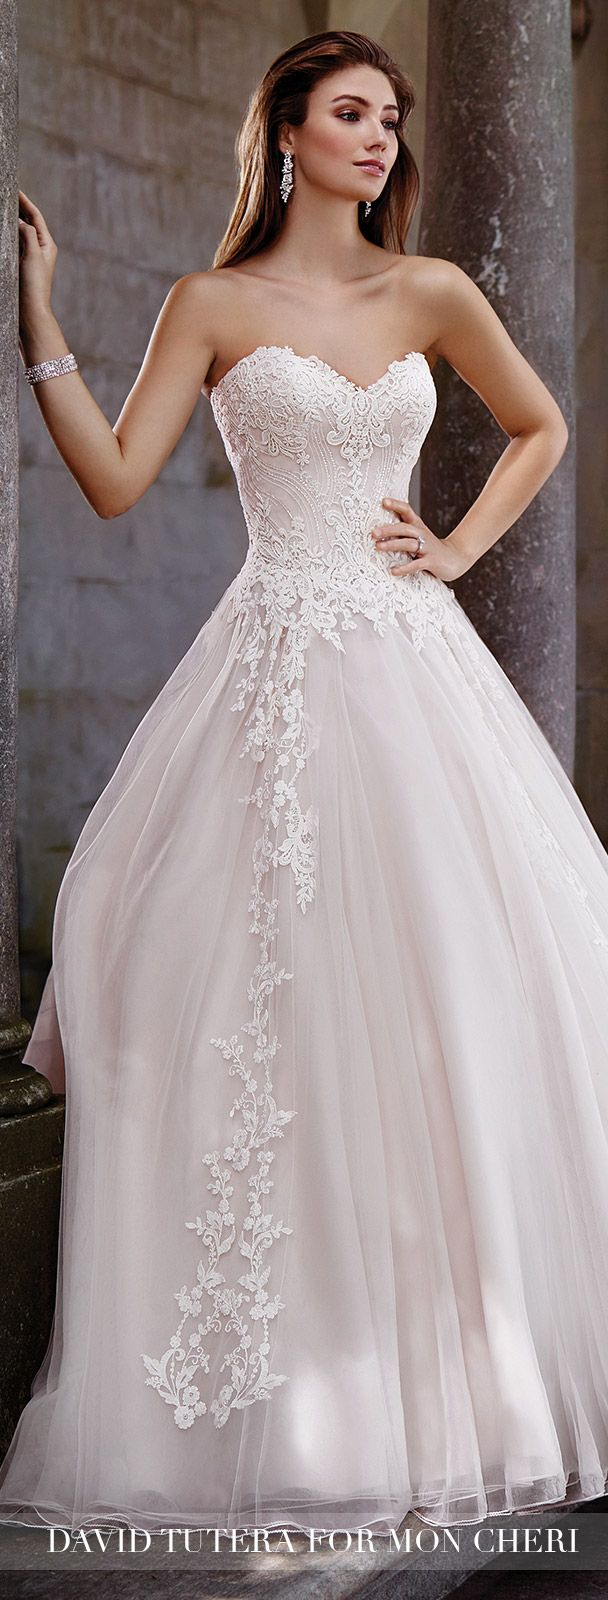 Blush Wedding Dress by David Tutera for Mon Cheri 2017